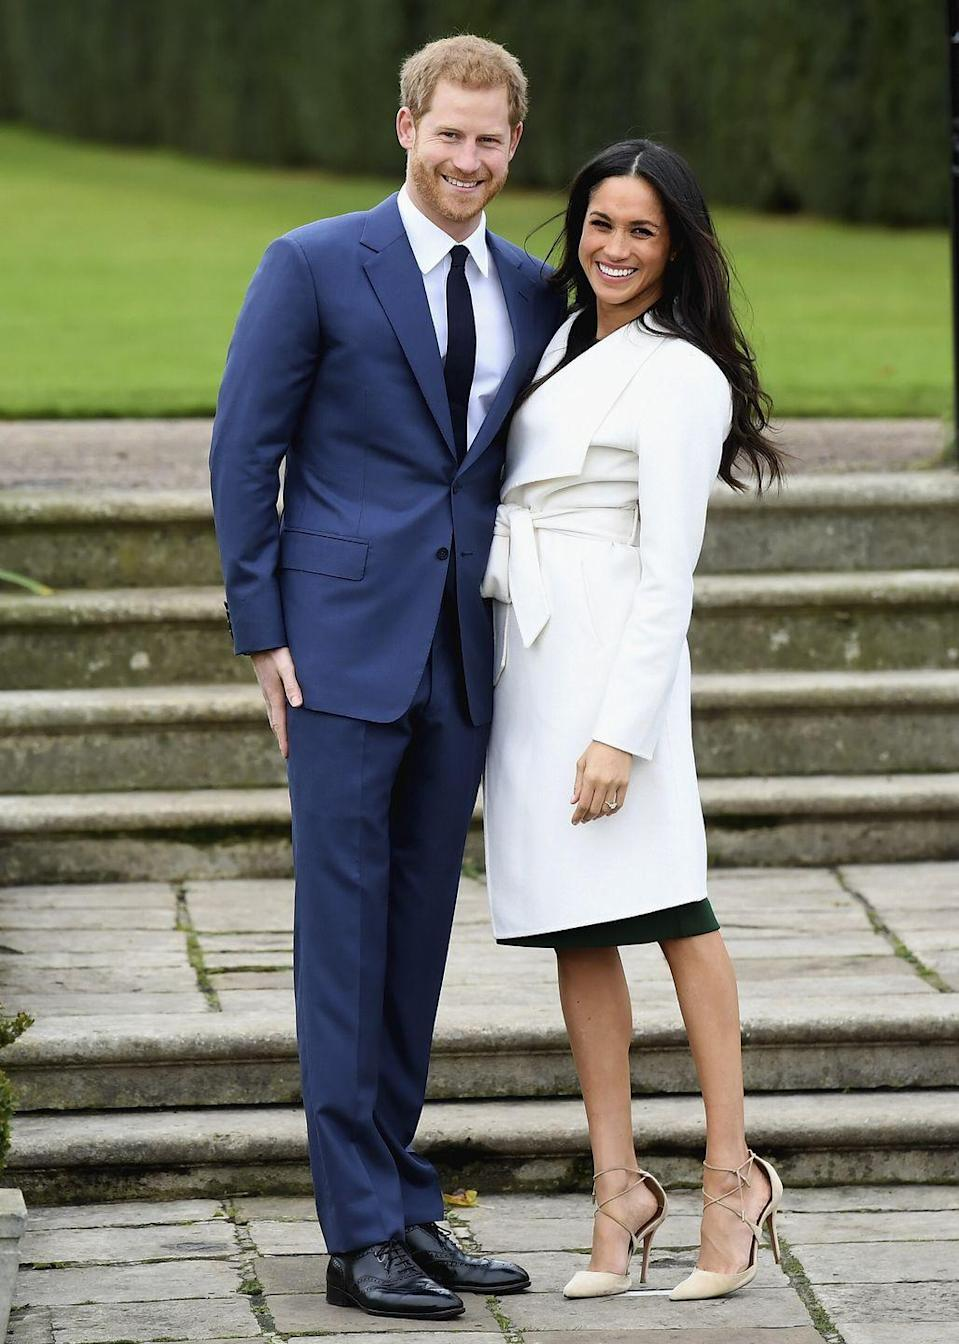 """<p>Harry and Meghan hit it off on a <a href=""""https://www.townandcountrymag.com/society/a9664508/prince-harry-meghan-markle-relationship/"""" rel=""""nofollow noopener"""" target=""""_blank"""" data-ylk=""""slk:blind date"""" class=""""link rapid-noclick-resp"""">blind date</a> back in July 2016. In November 2017, the couple happily announced their engagement with a photoshoot and interview.</p>"""